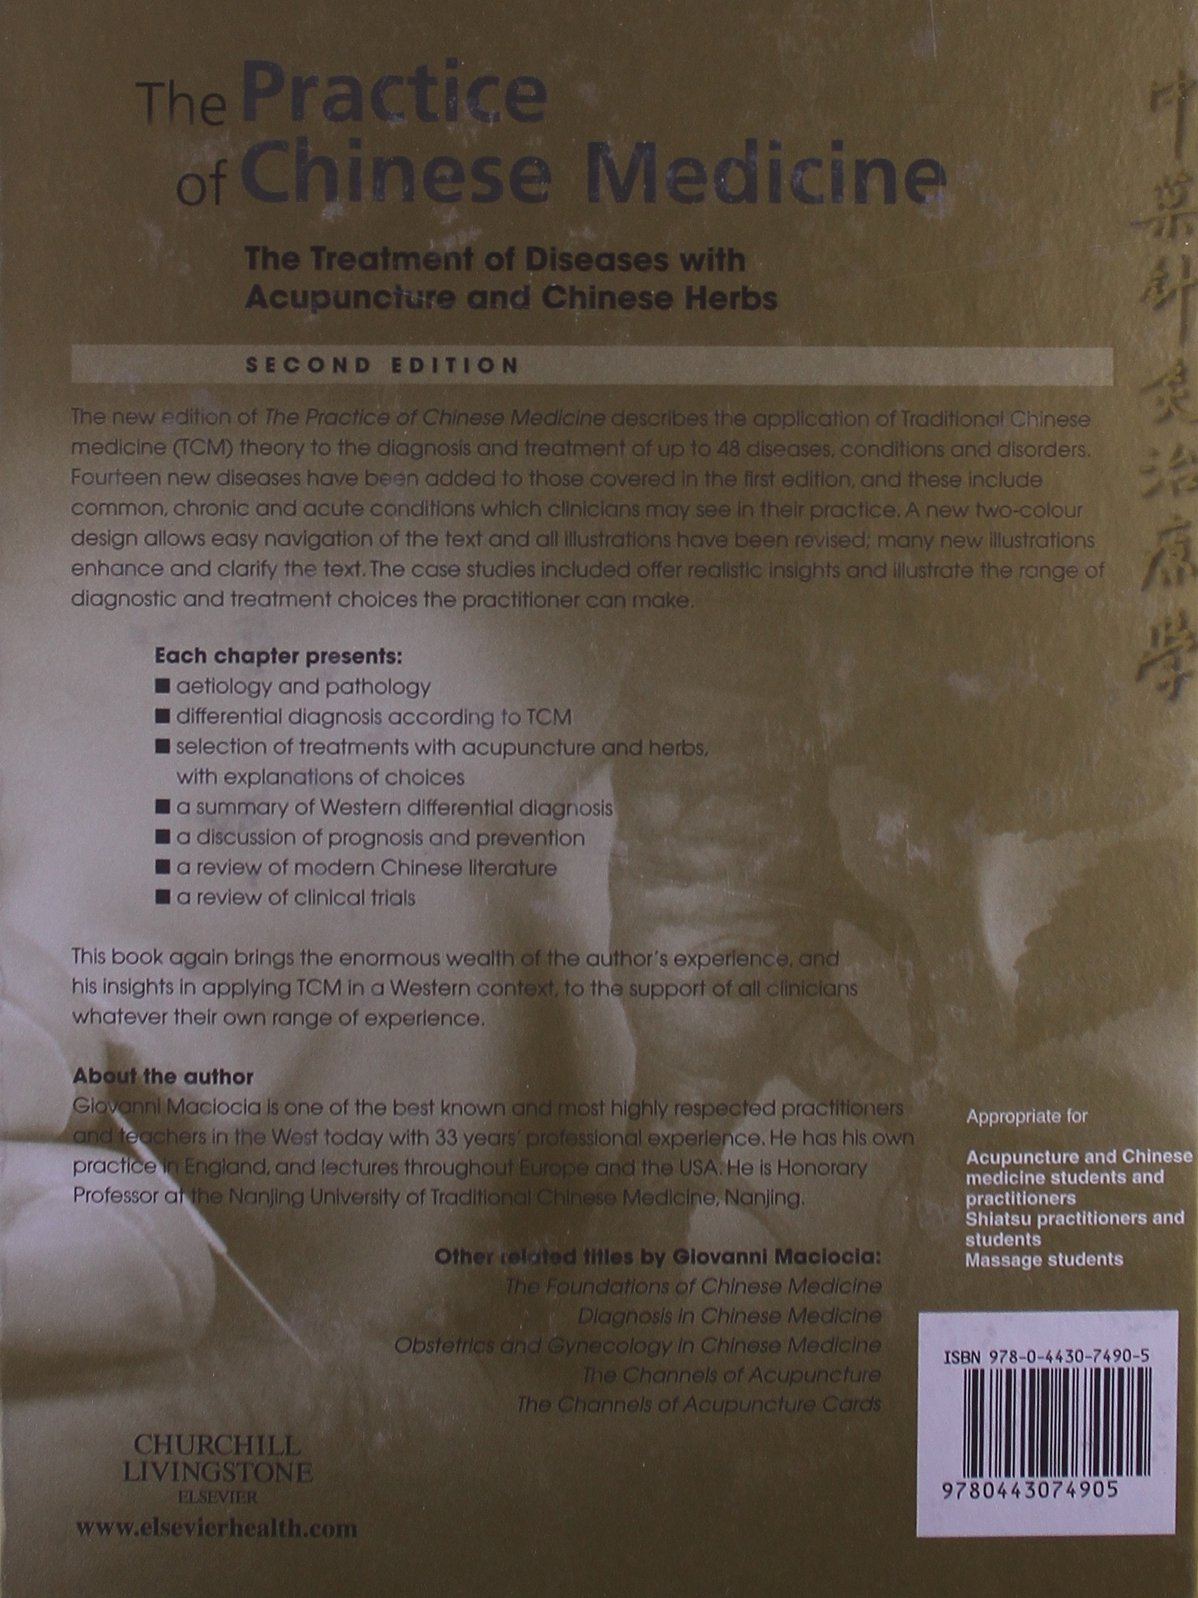 The practice of chinese medicine the treatment of diseases with the practice of chinese medicine the treatment of diseases with acupuncture and chinese herbs 2e amazon giovanni maciocia cacnanjing fandeluxe Gallery